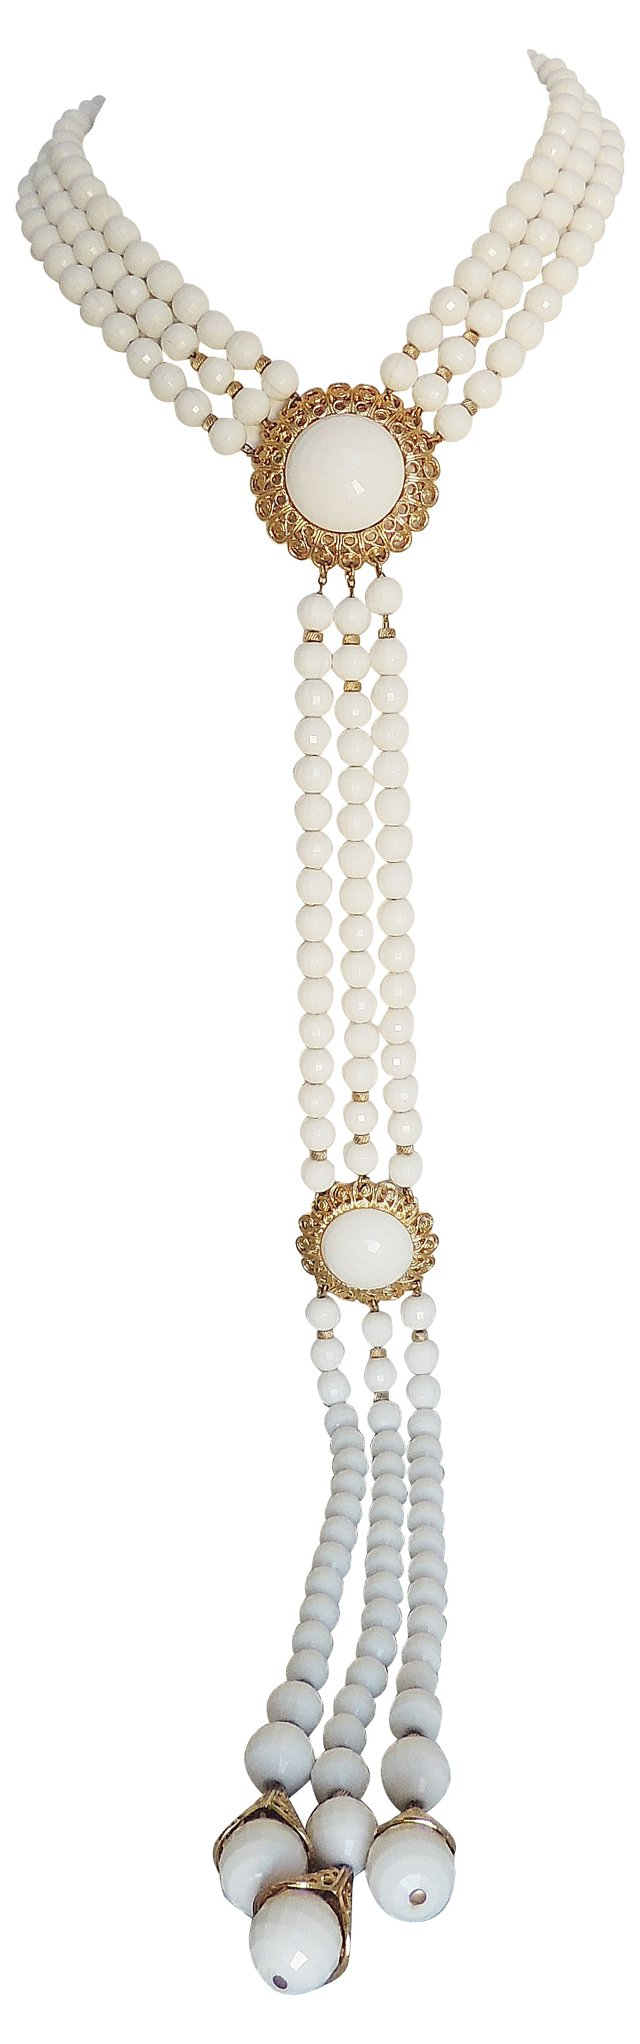 1970s Monet White Beaded Necklace